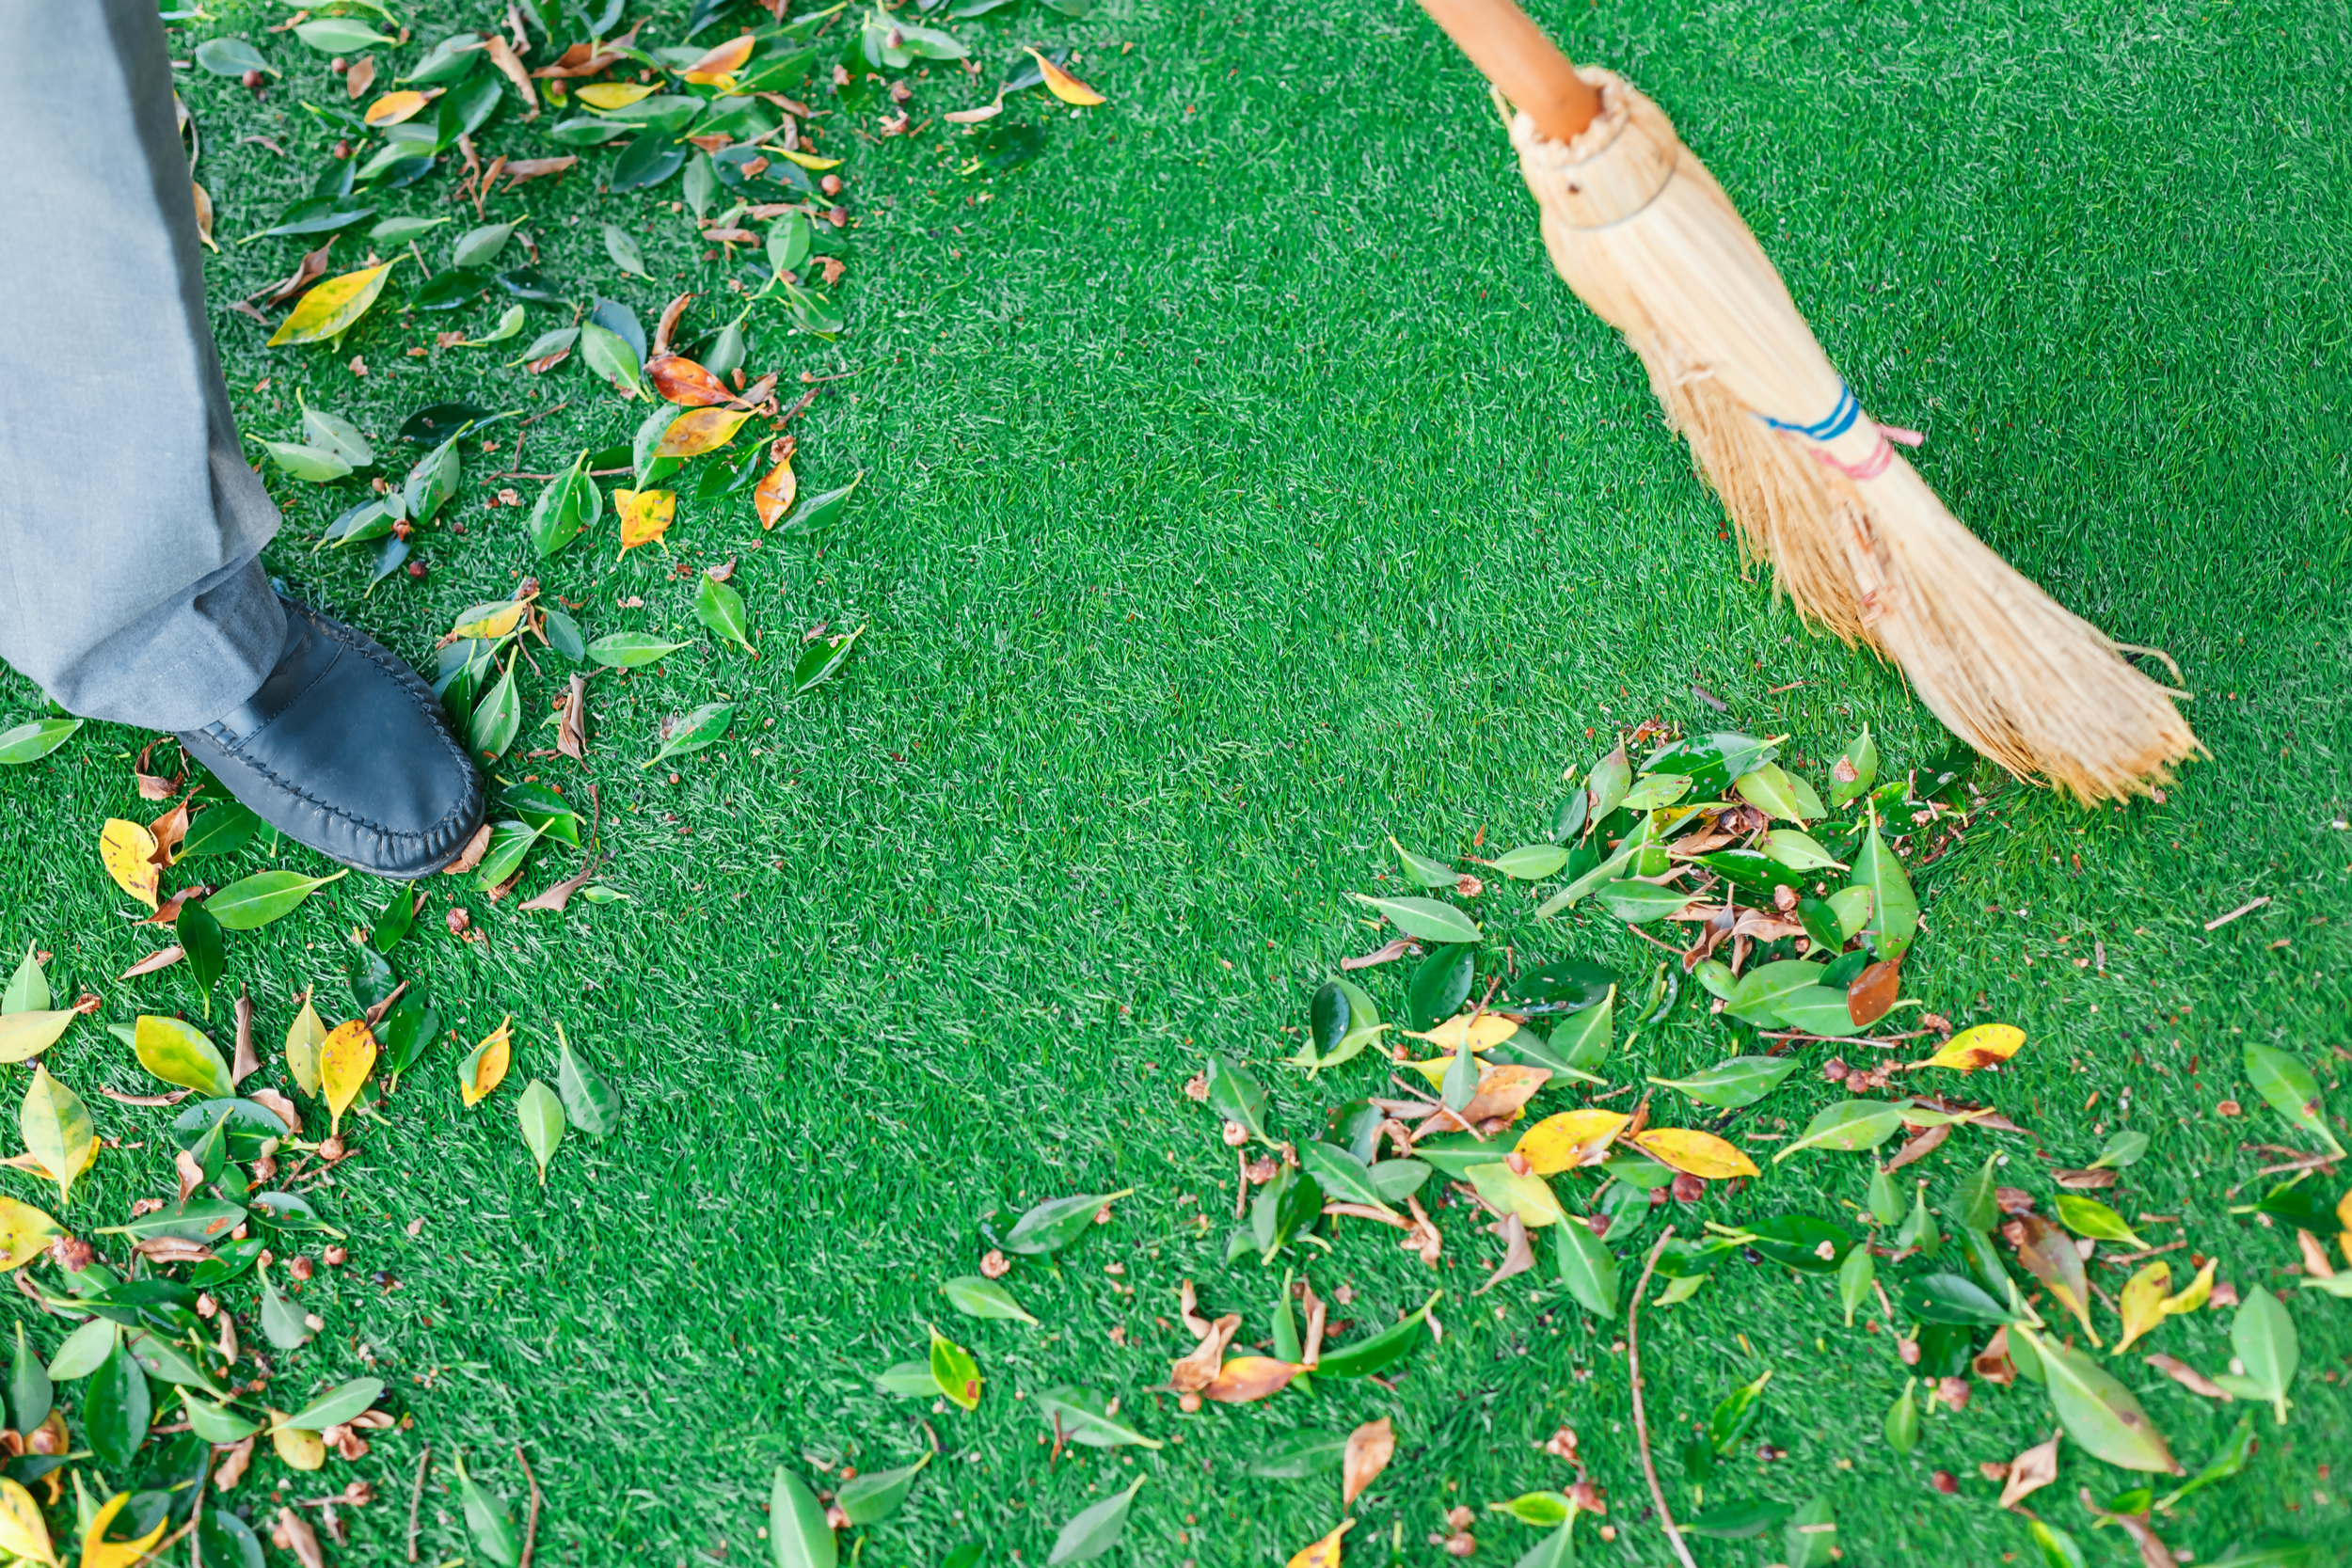 Man sweeping leaves off of artificial turf